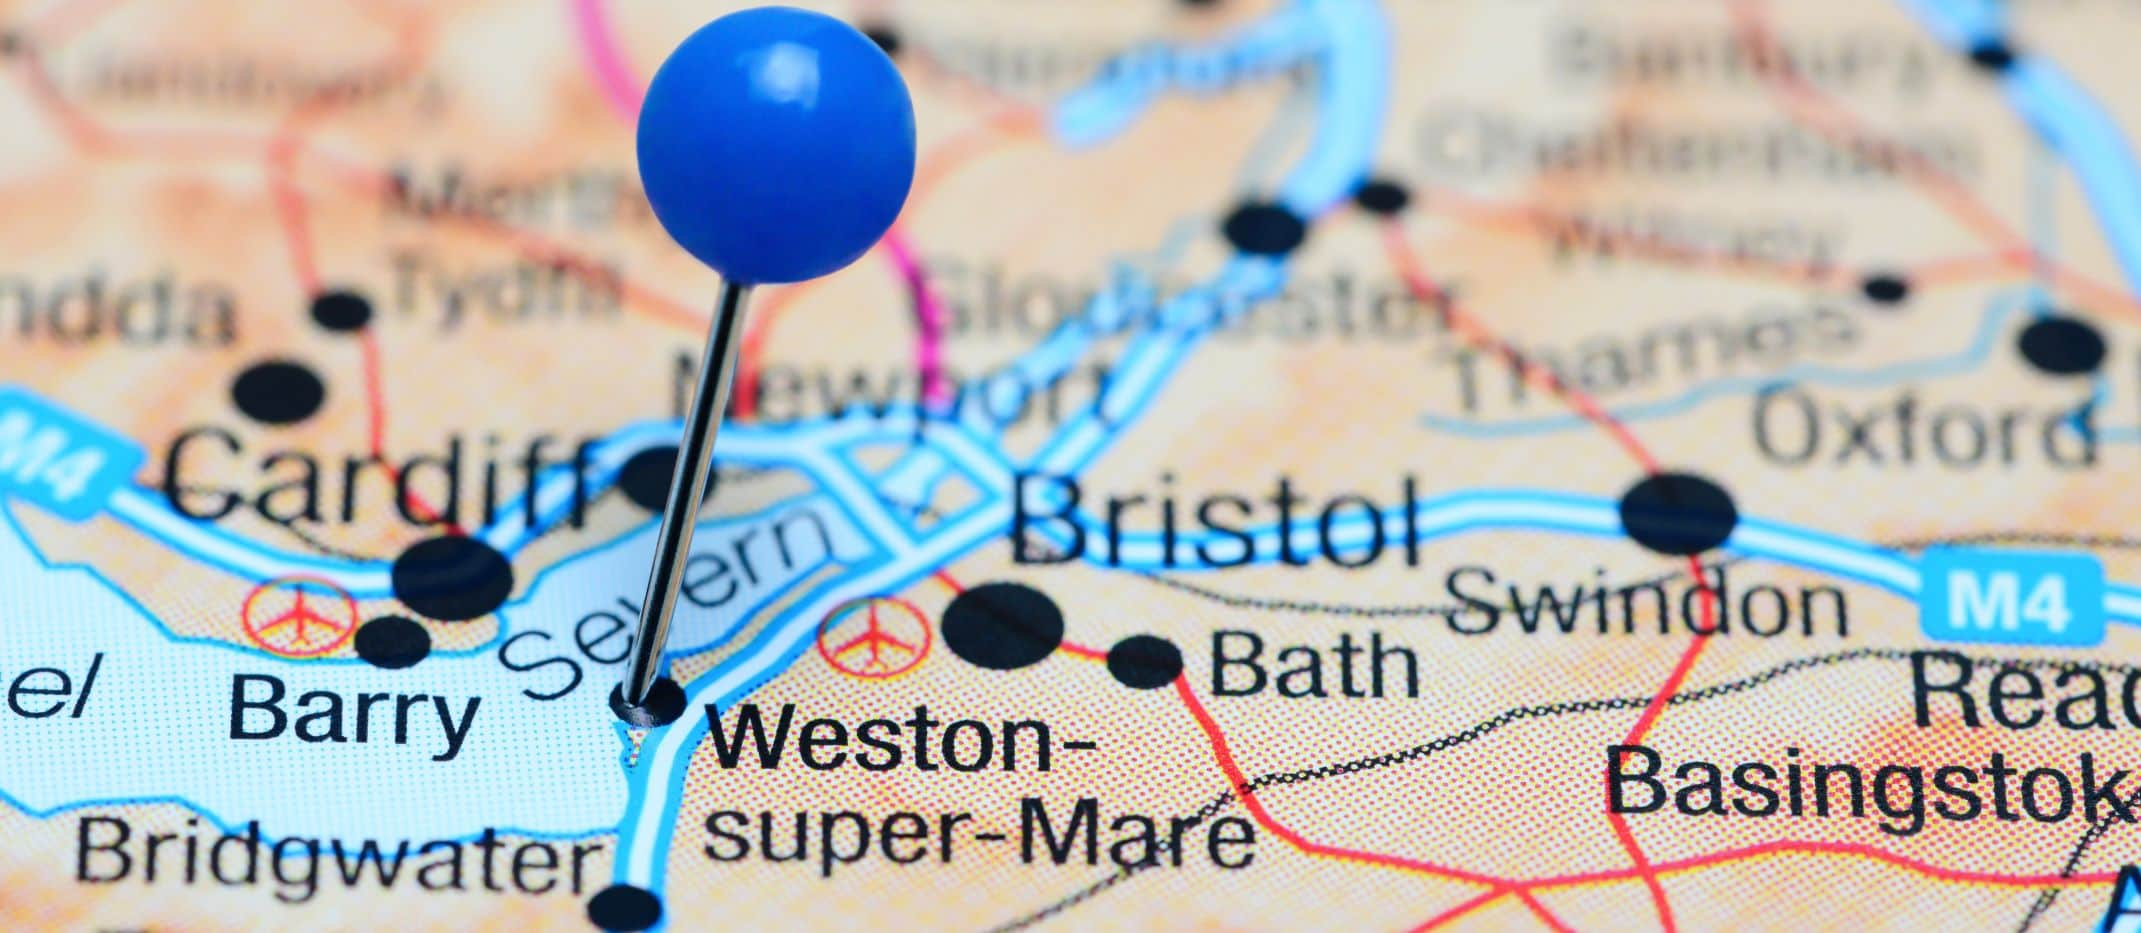 Weston-super-Mare on the Map